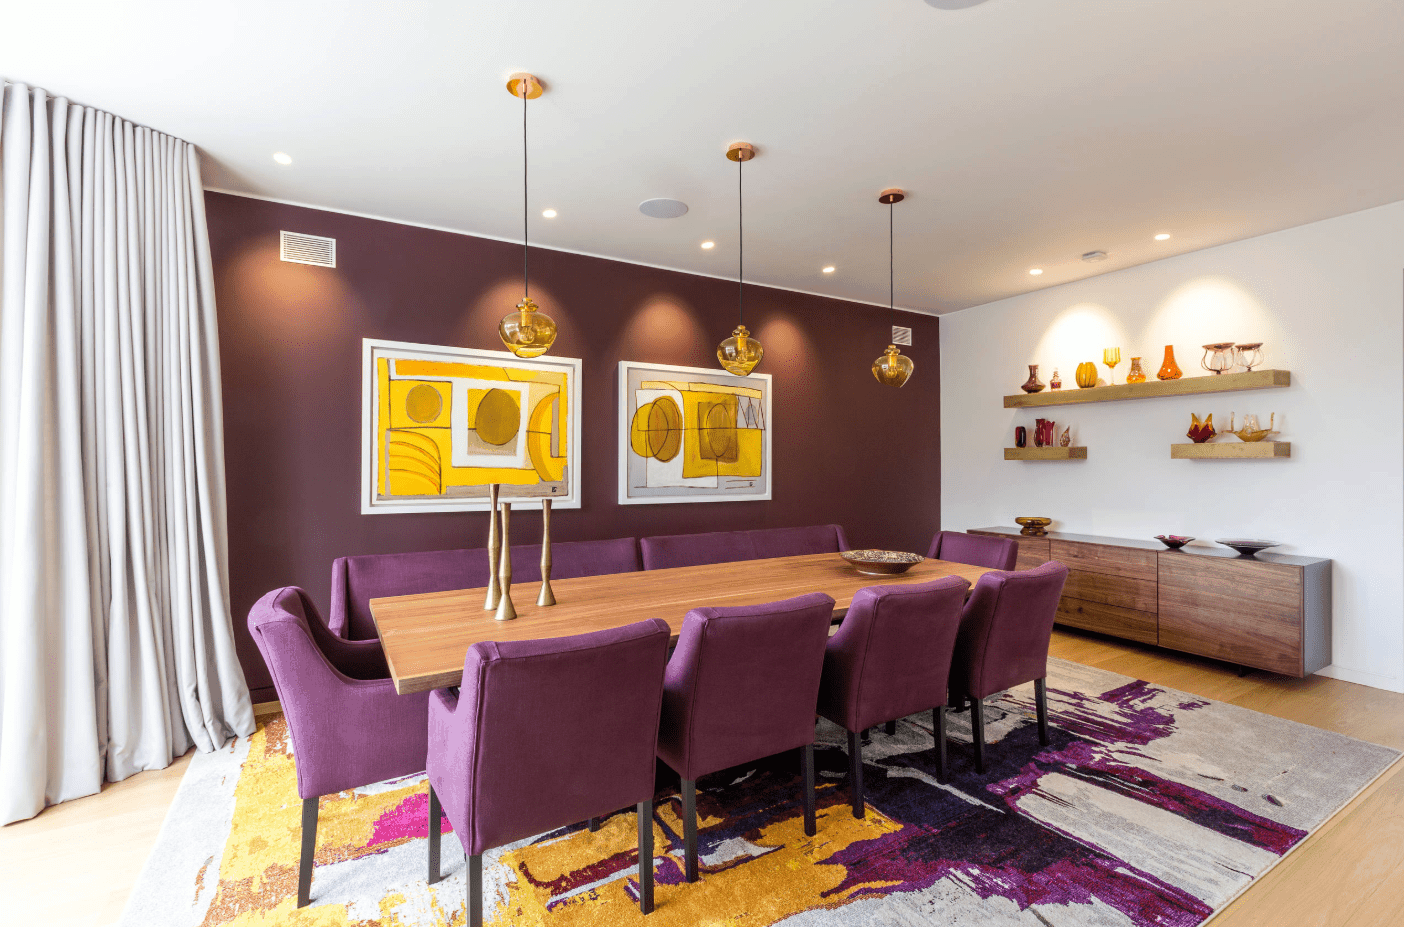 Dining room featuring a set of purple seats matching the purple wall with charming yellow wall decors.  The dining table set is lighted by three pendant lights.